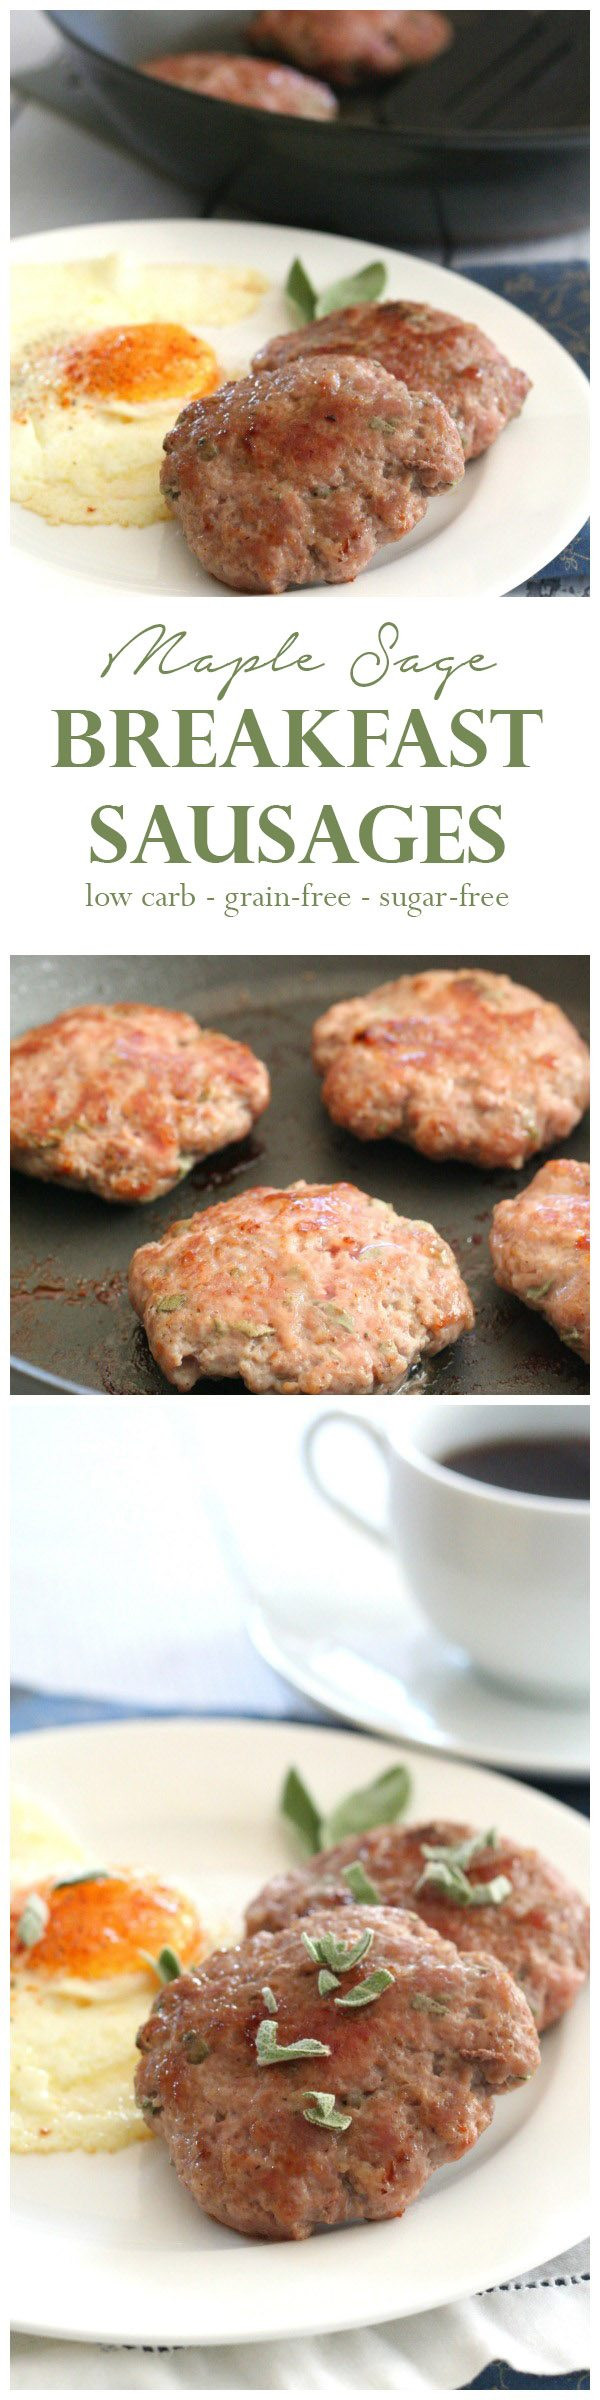 Maple Breakfast Sausage Recipes  Low Carb Maple Sage Breakfast Sausage Recipe